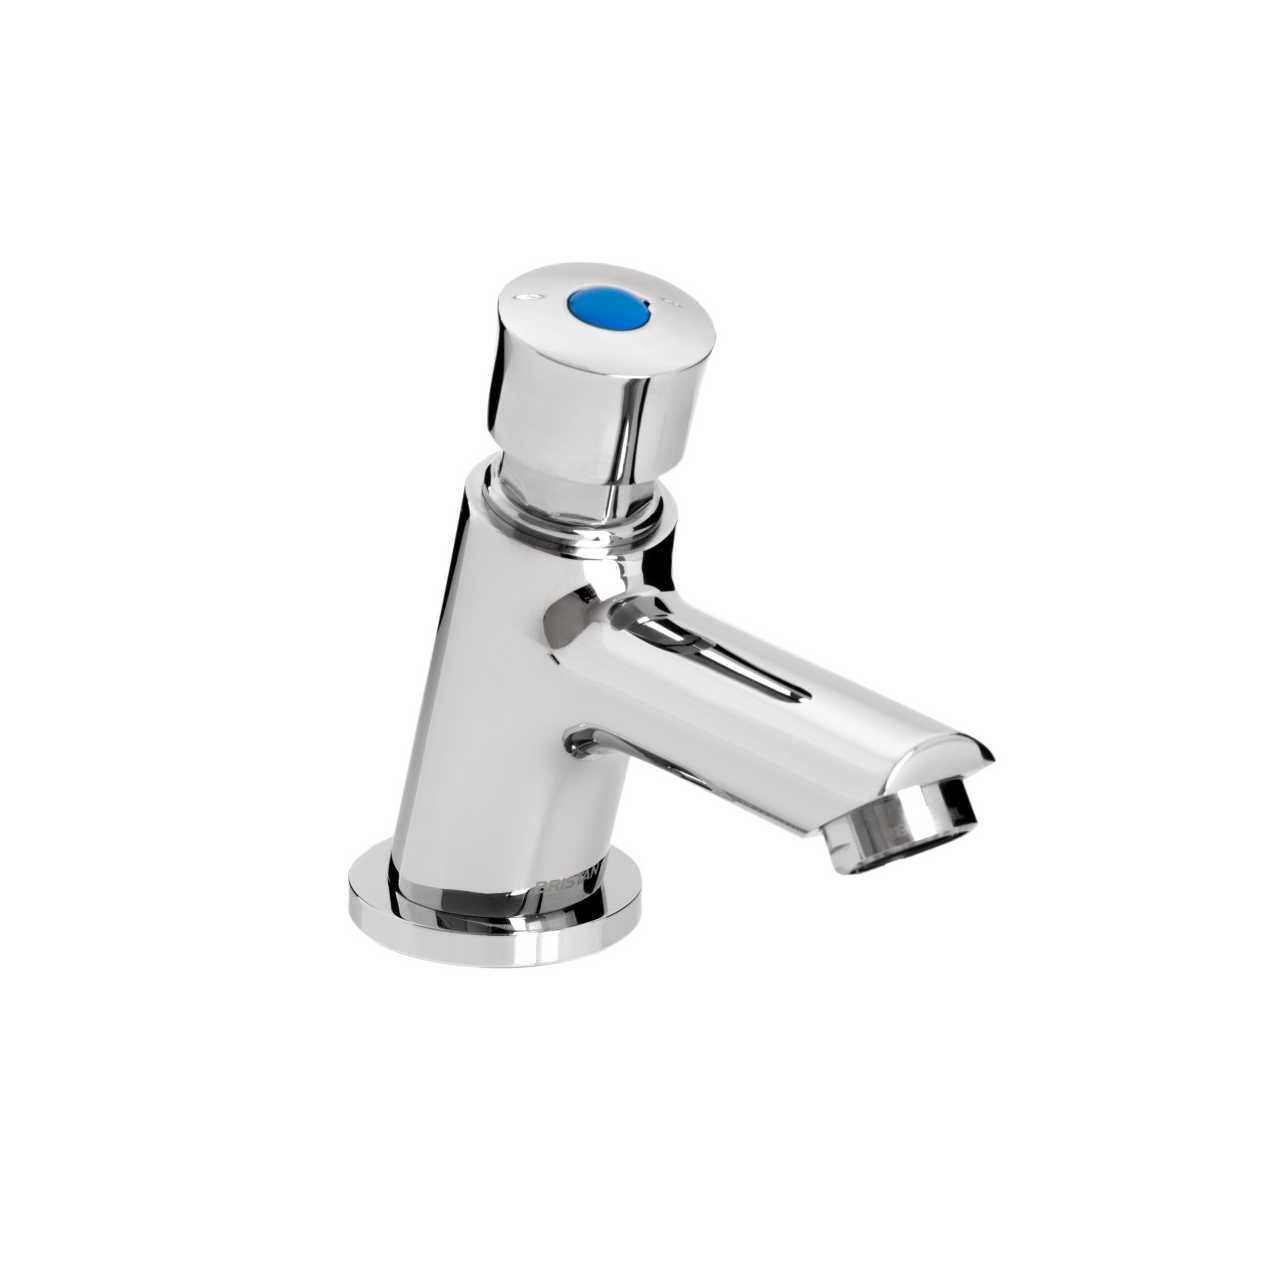 Bristan Timed Flow Chrome Soft Touch Flow Regulated Single Luxury Basin Tap with Hot and Cold Indices - Z2-LUX-1/2-C